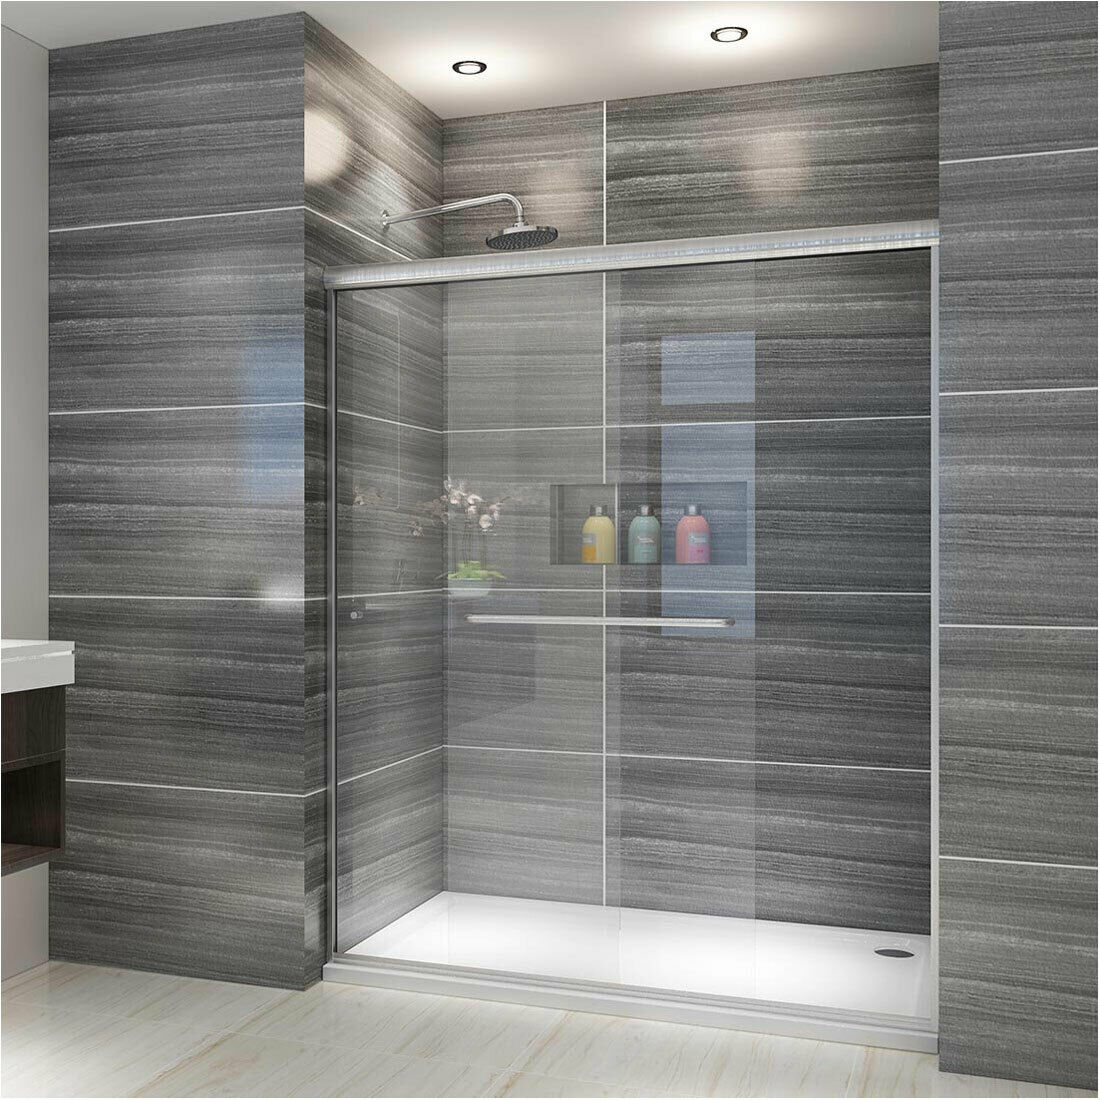 Elegant 60 X 72 Semi Frameless Shower Door 2 Sliding Clear Glass Chrome Finish